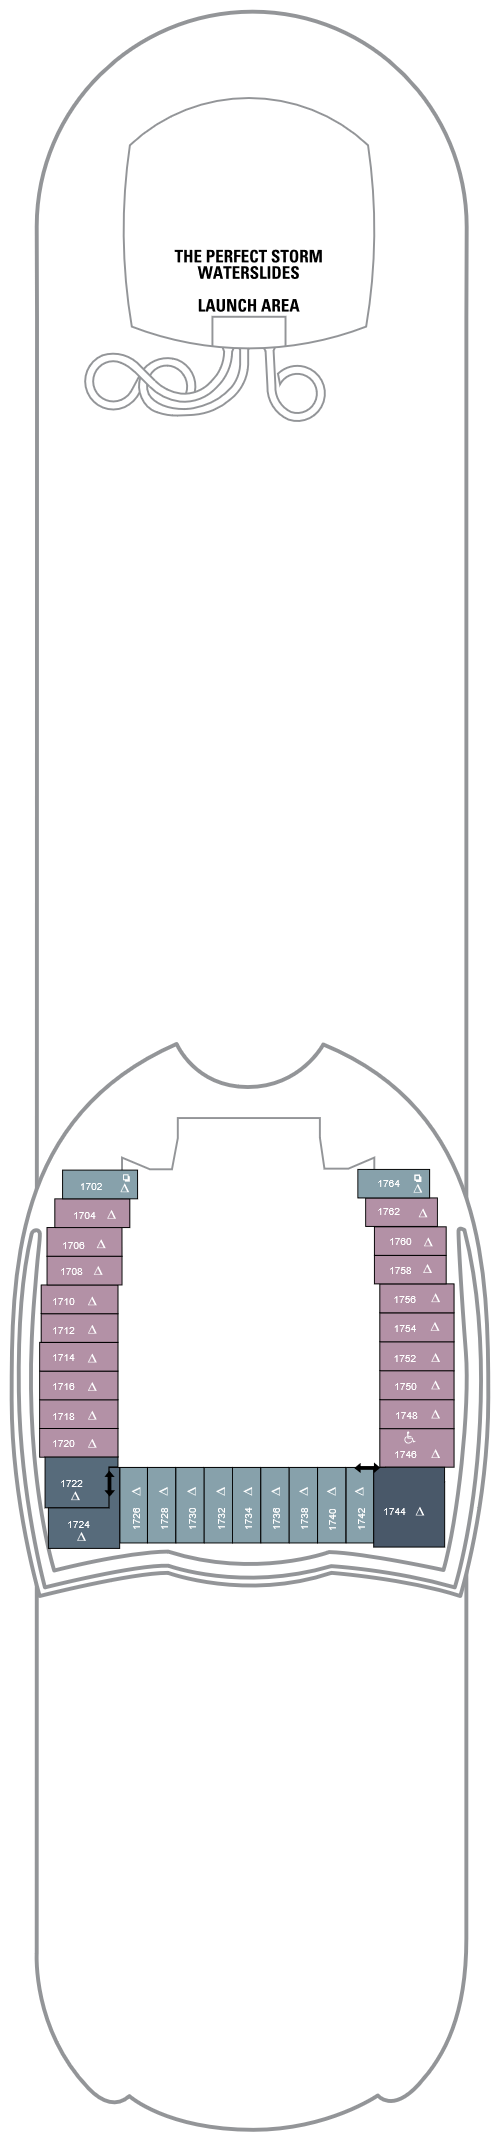 Harmony of the Seas Deck 18 layout